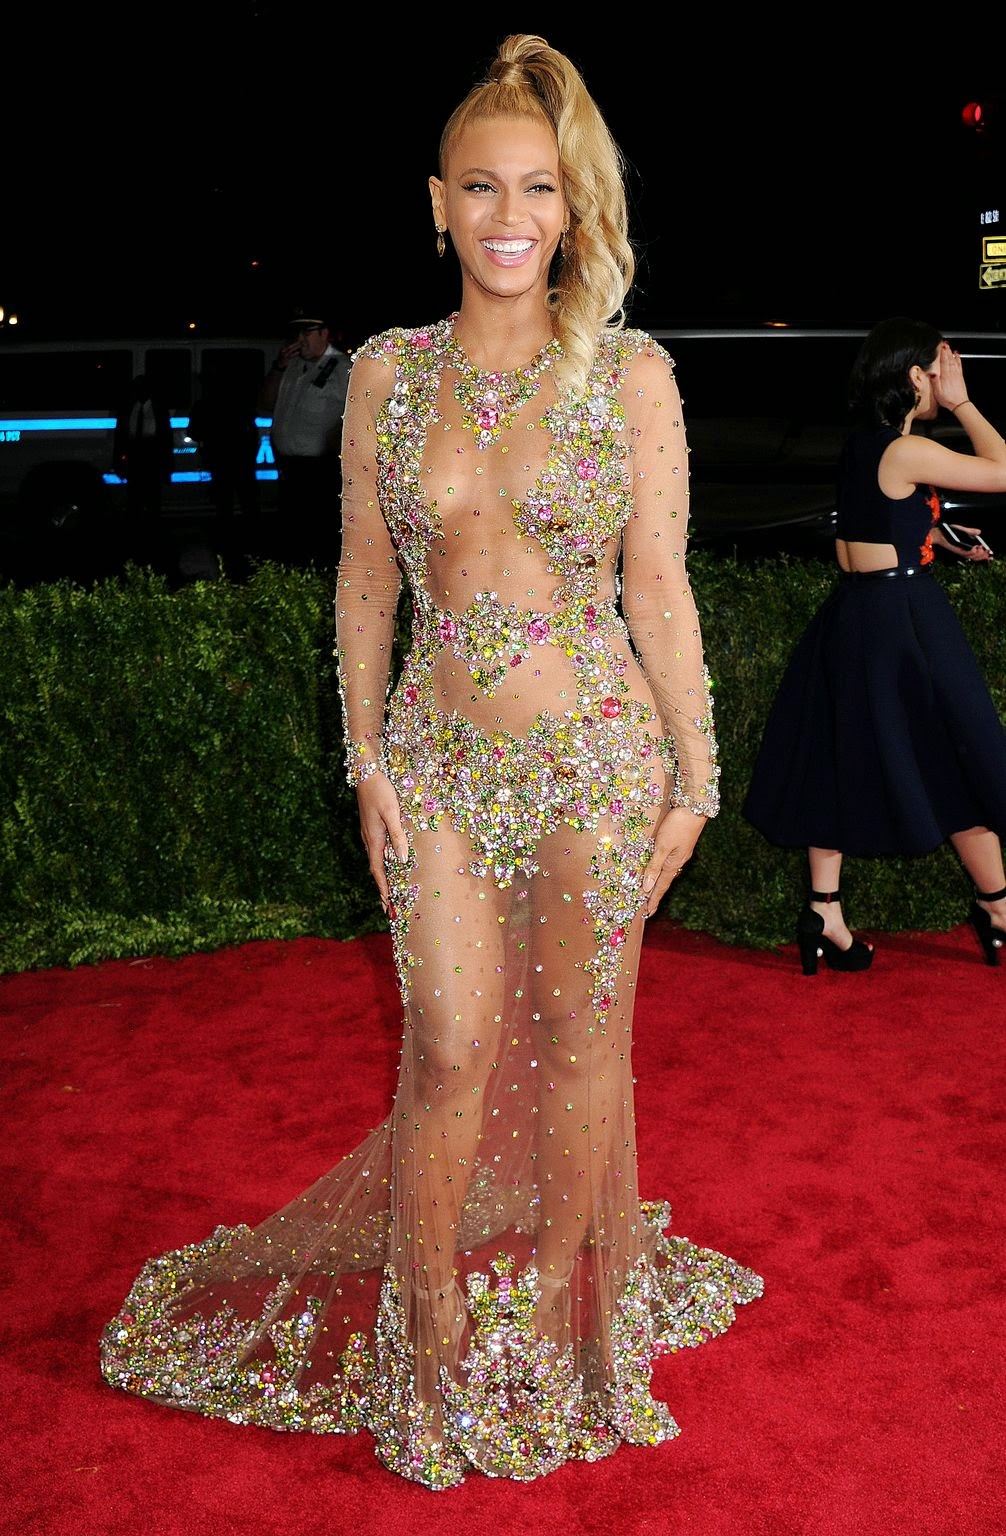 Beyonce bares it all in a Givenchy Couture dress at the 2015 Met Gala